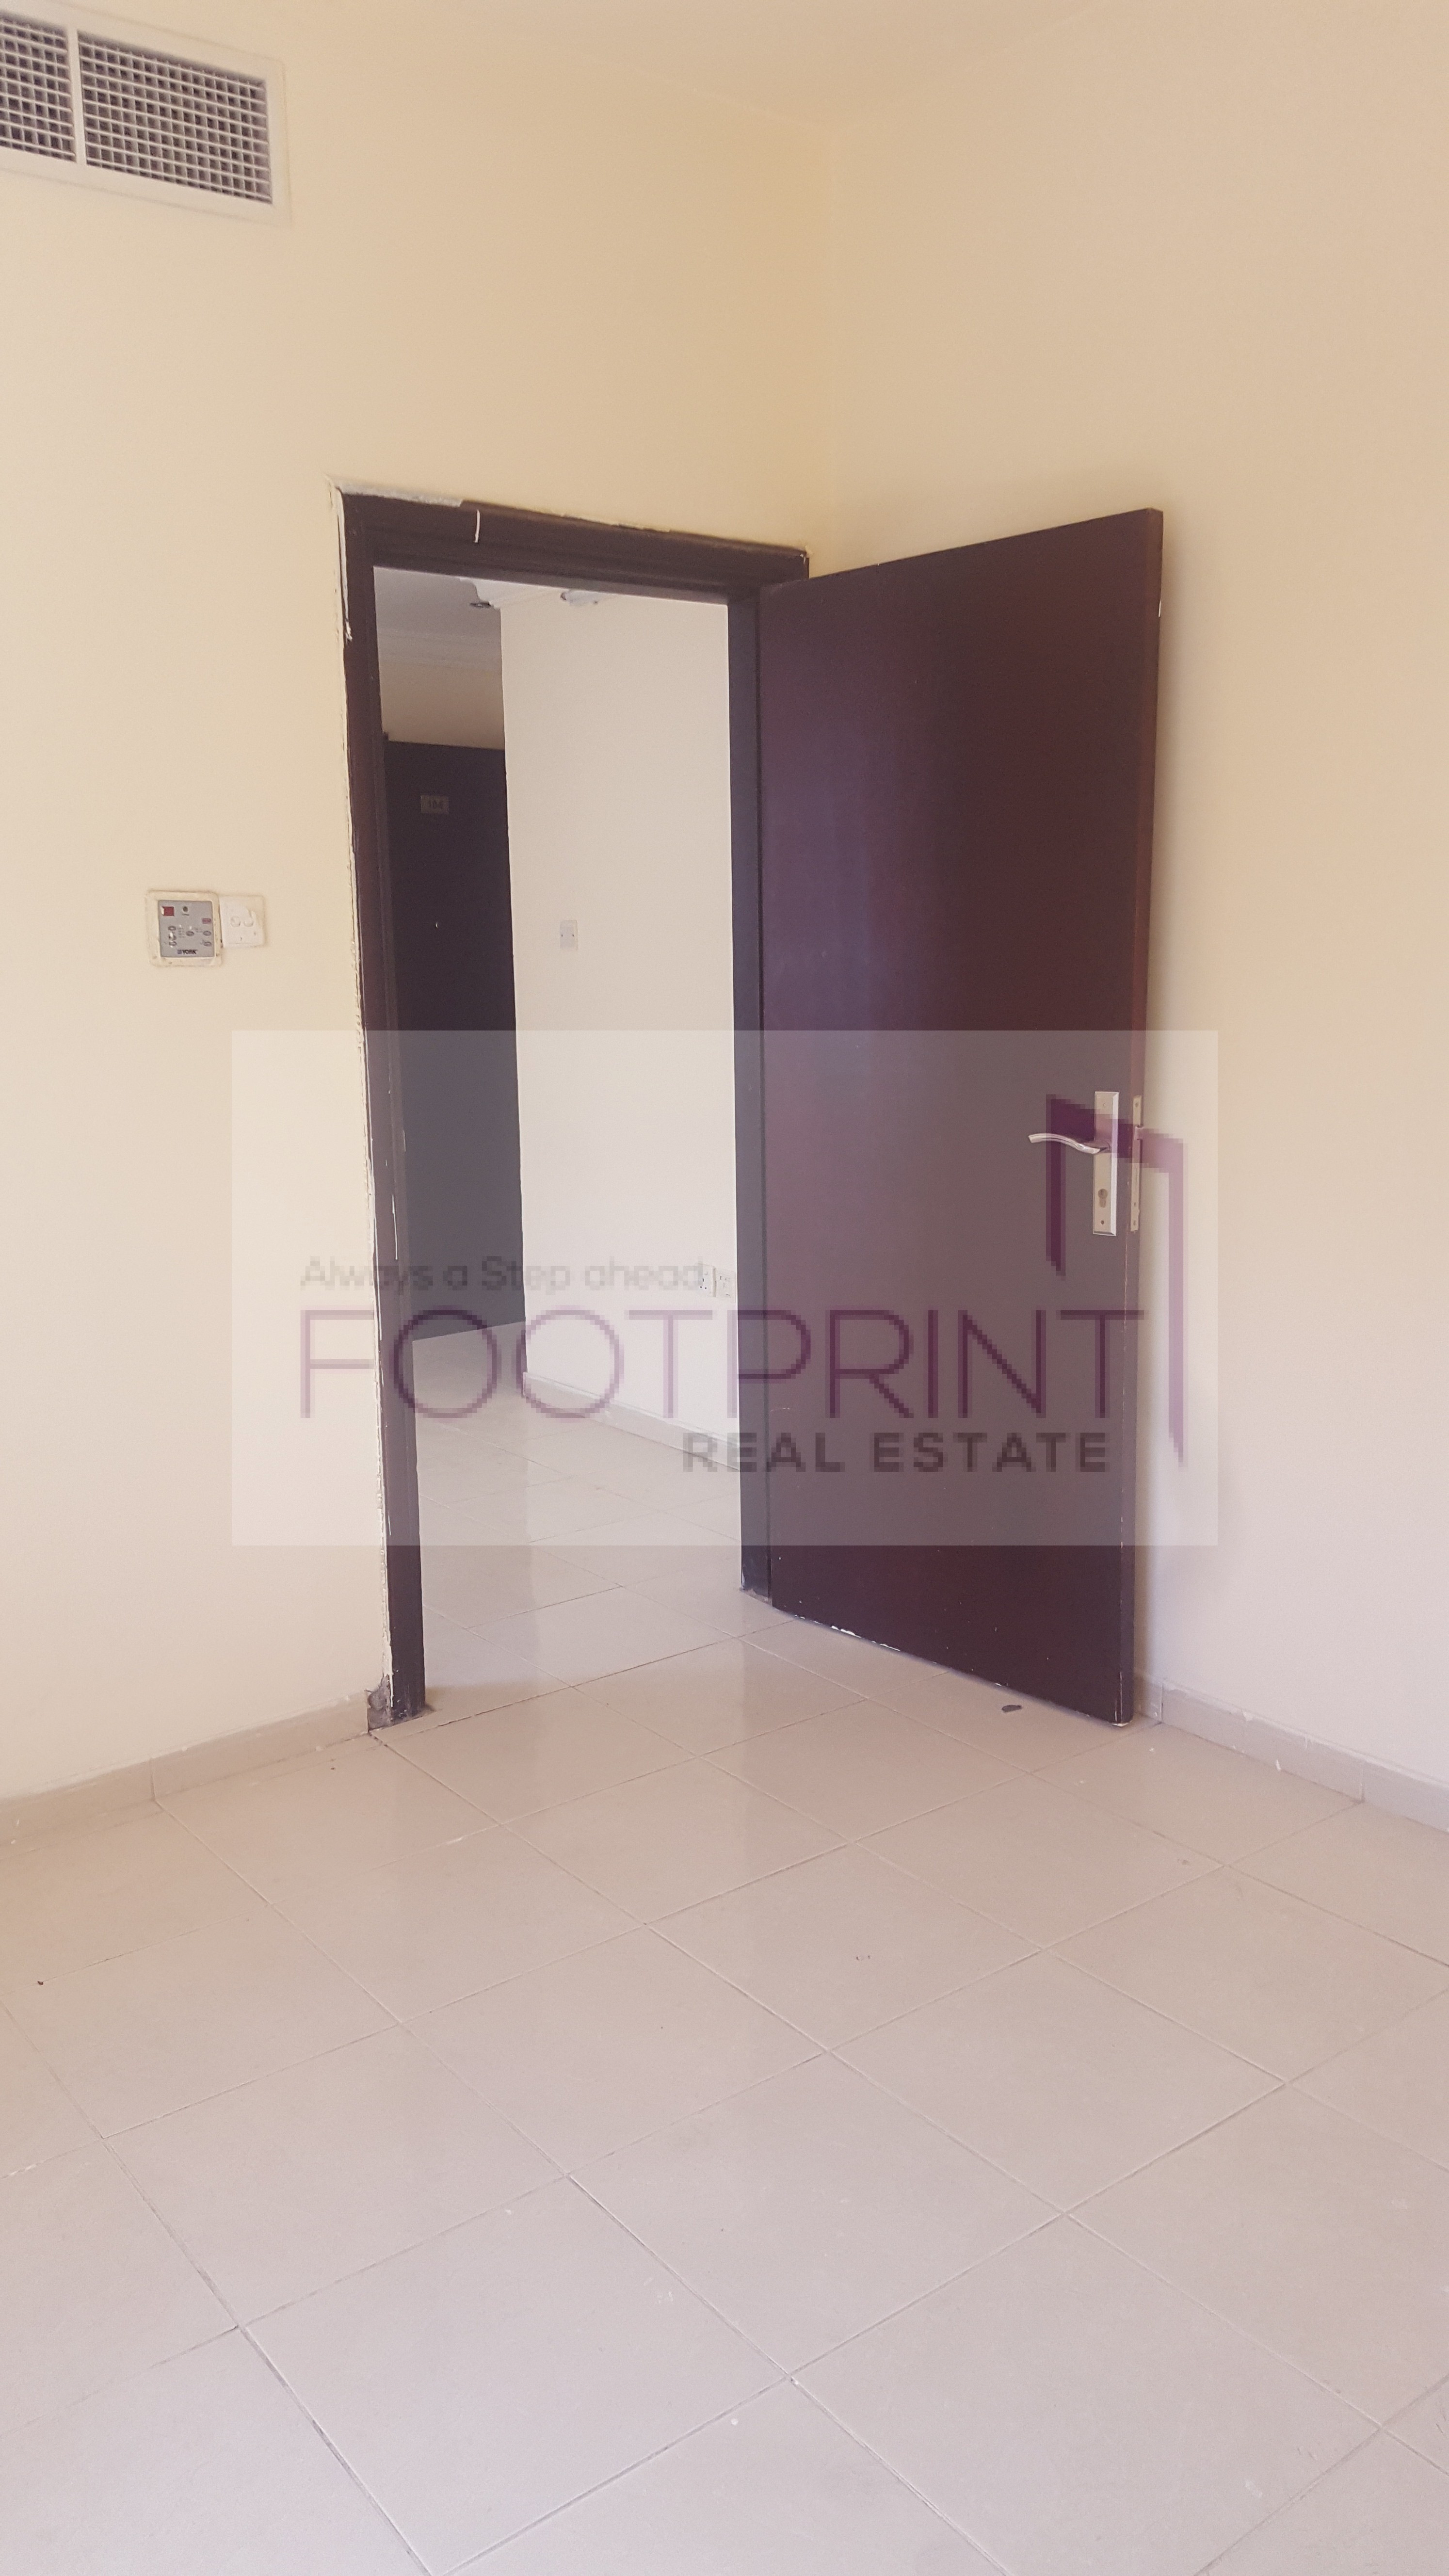 1bhk For Rent with balcony central A/C IN University City SHARJAH IN @24000 4 chq